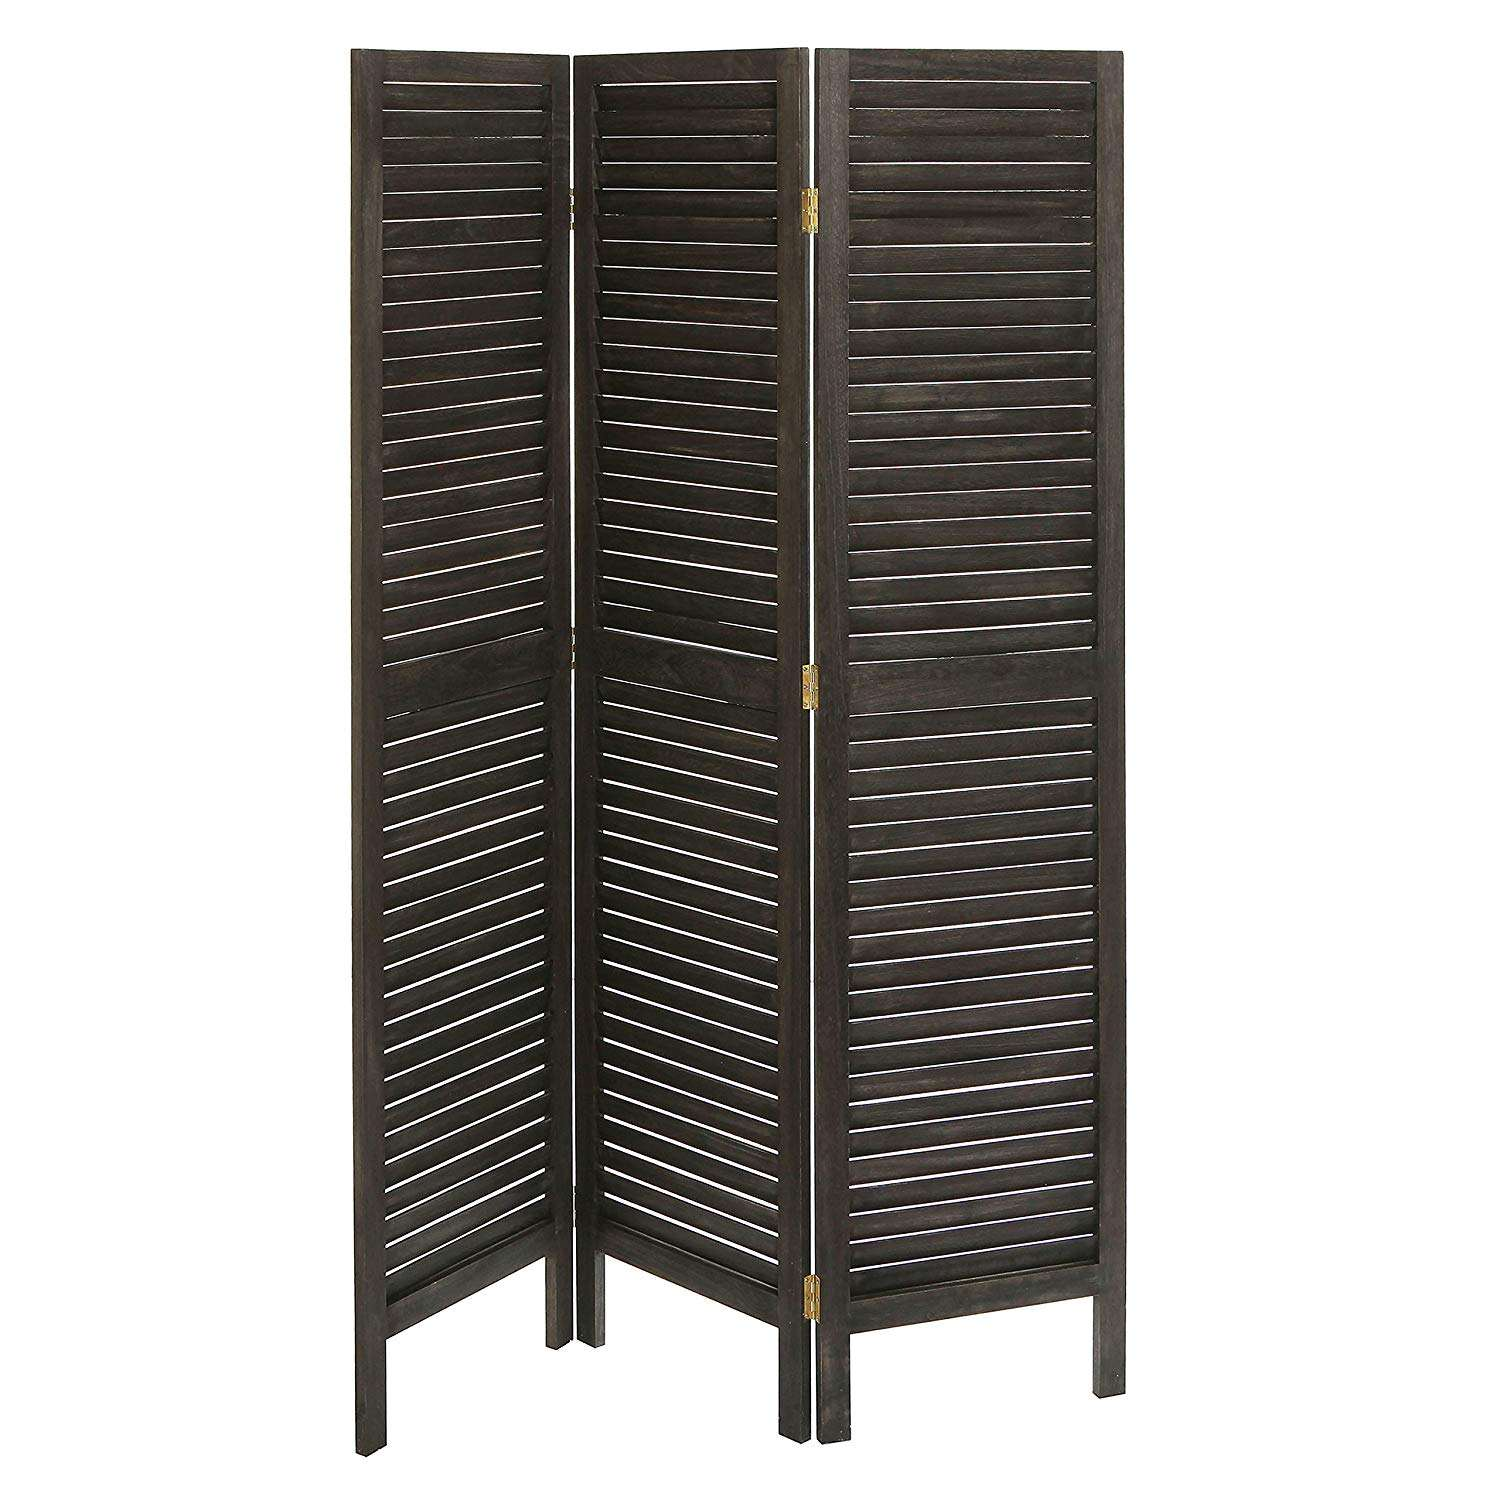 Dark Wood Louvered Panels Bamboo Fitting Room Divider Folding Screen